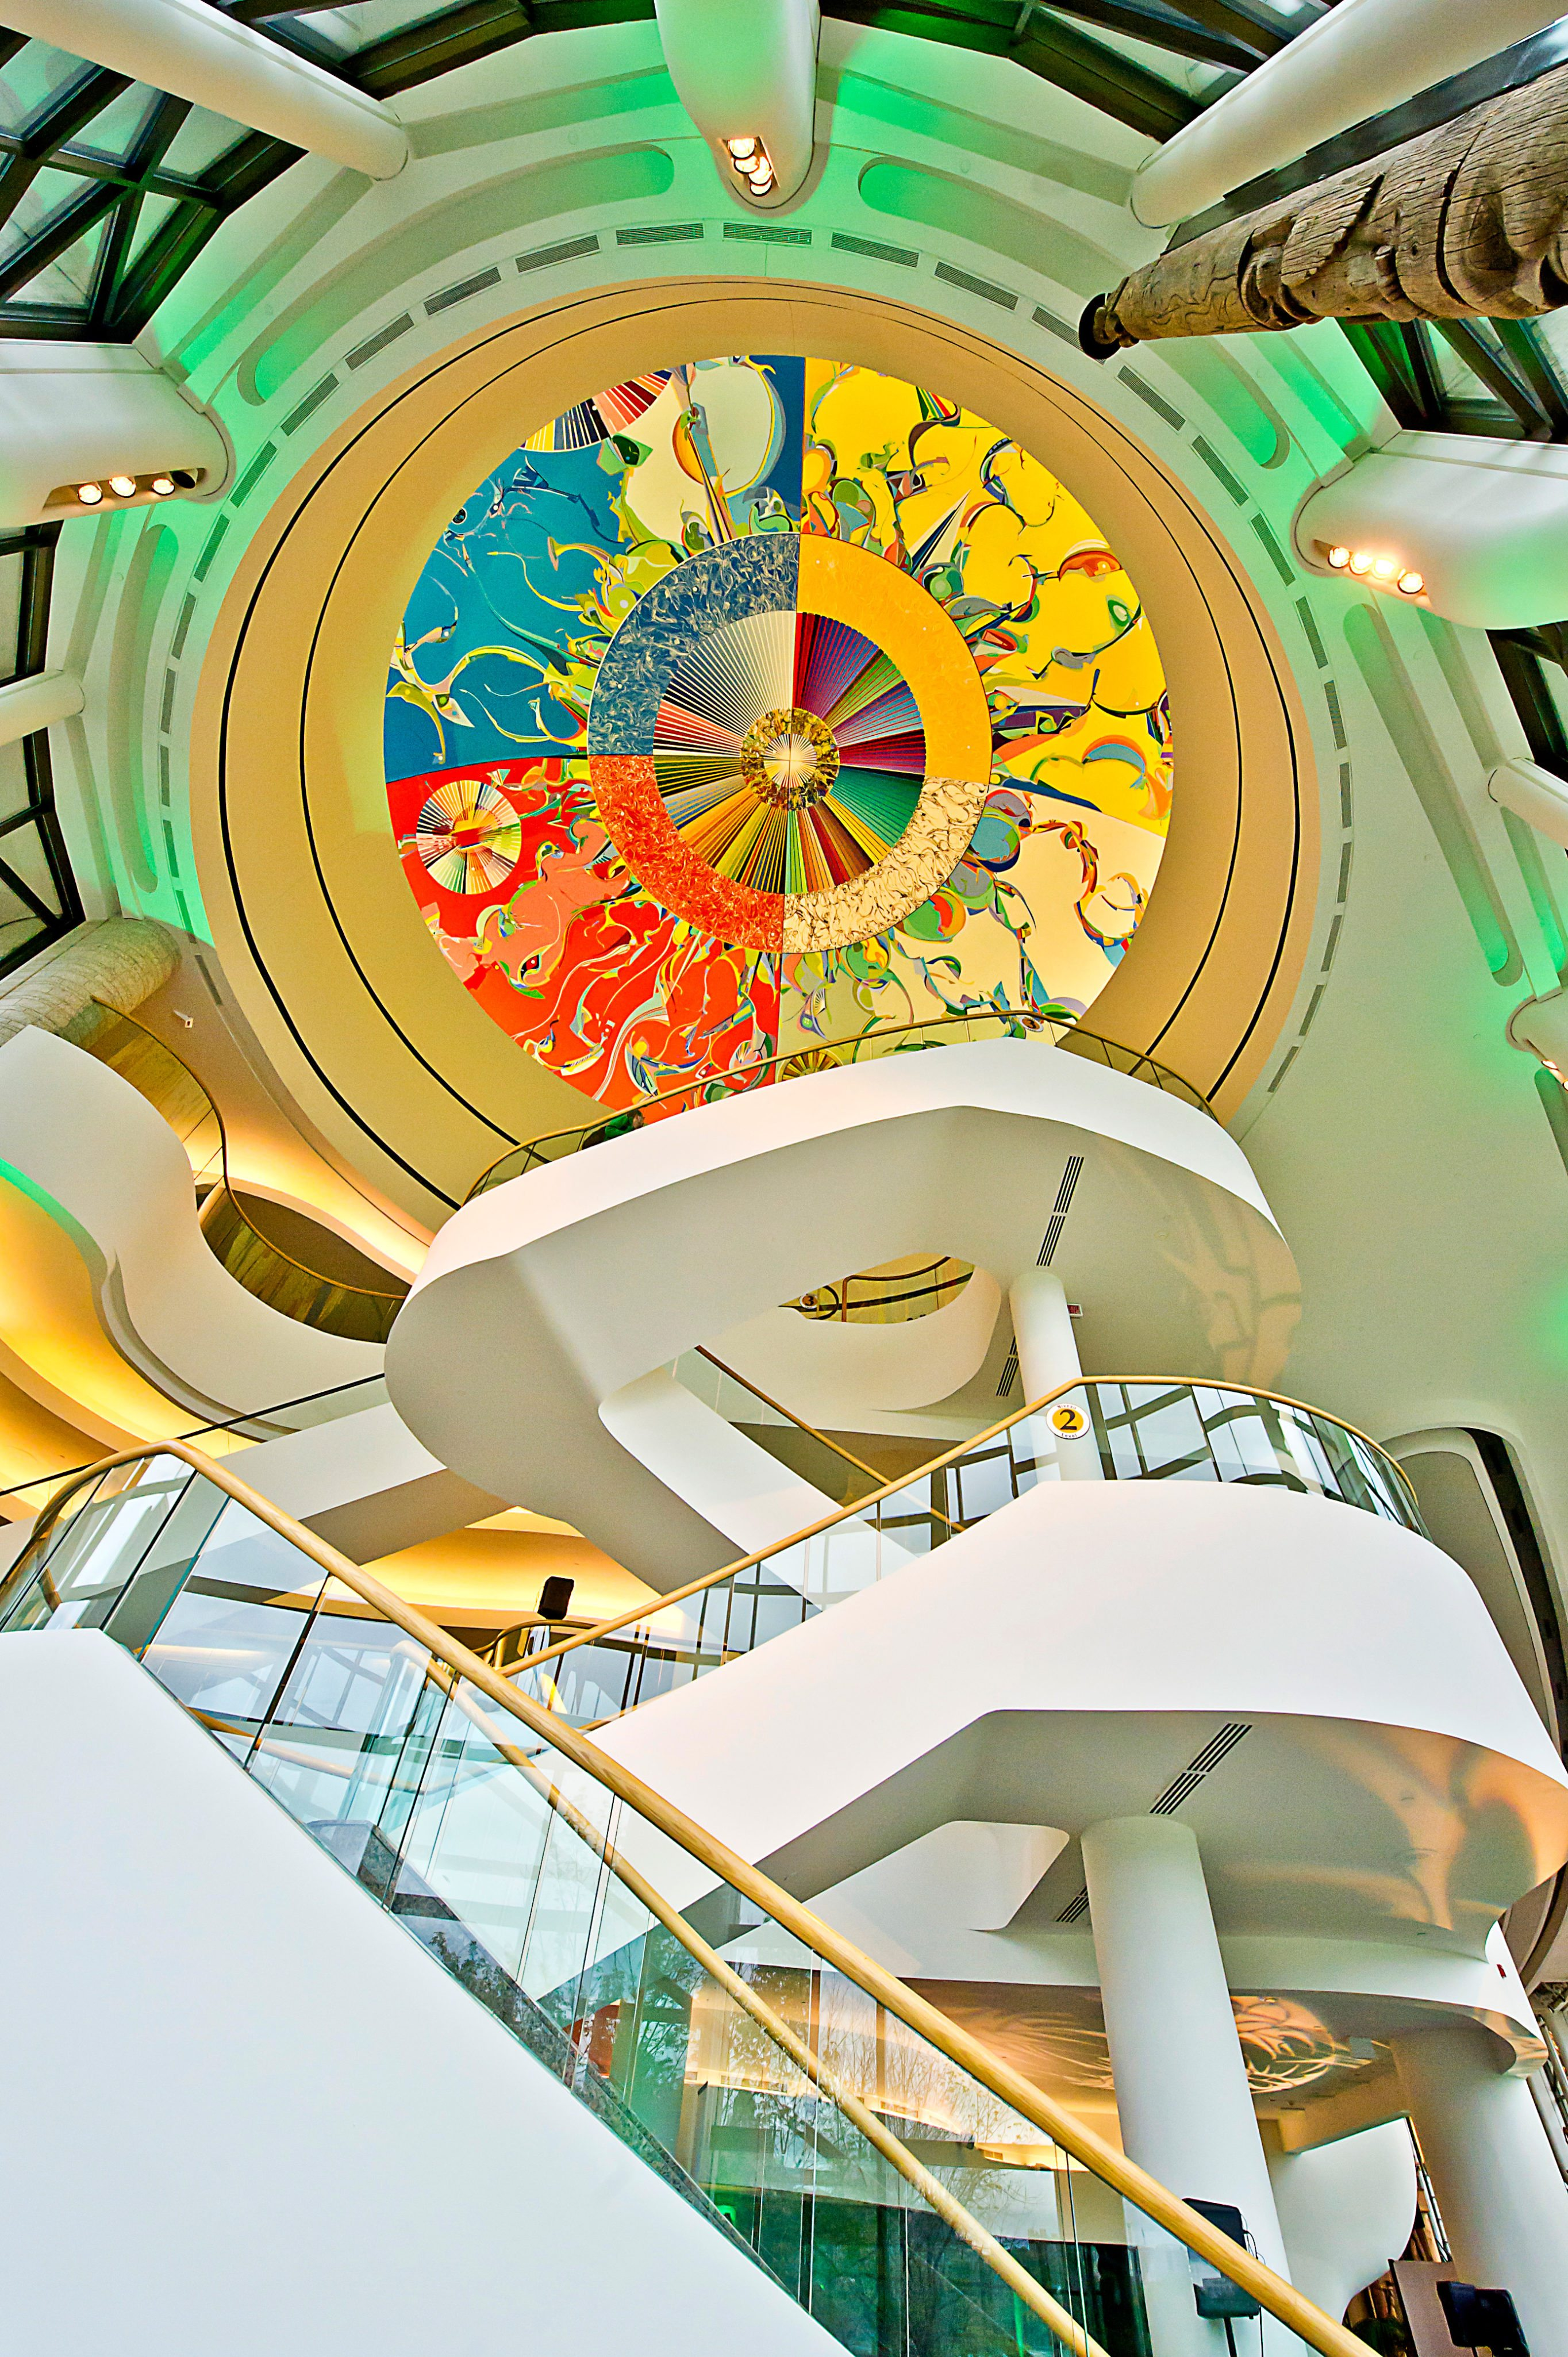 Morning Star, Alex Janvier, on dome of Canadian Museum of History